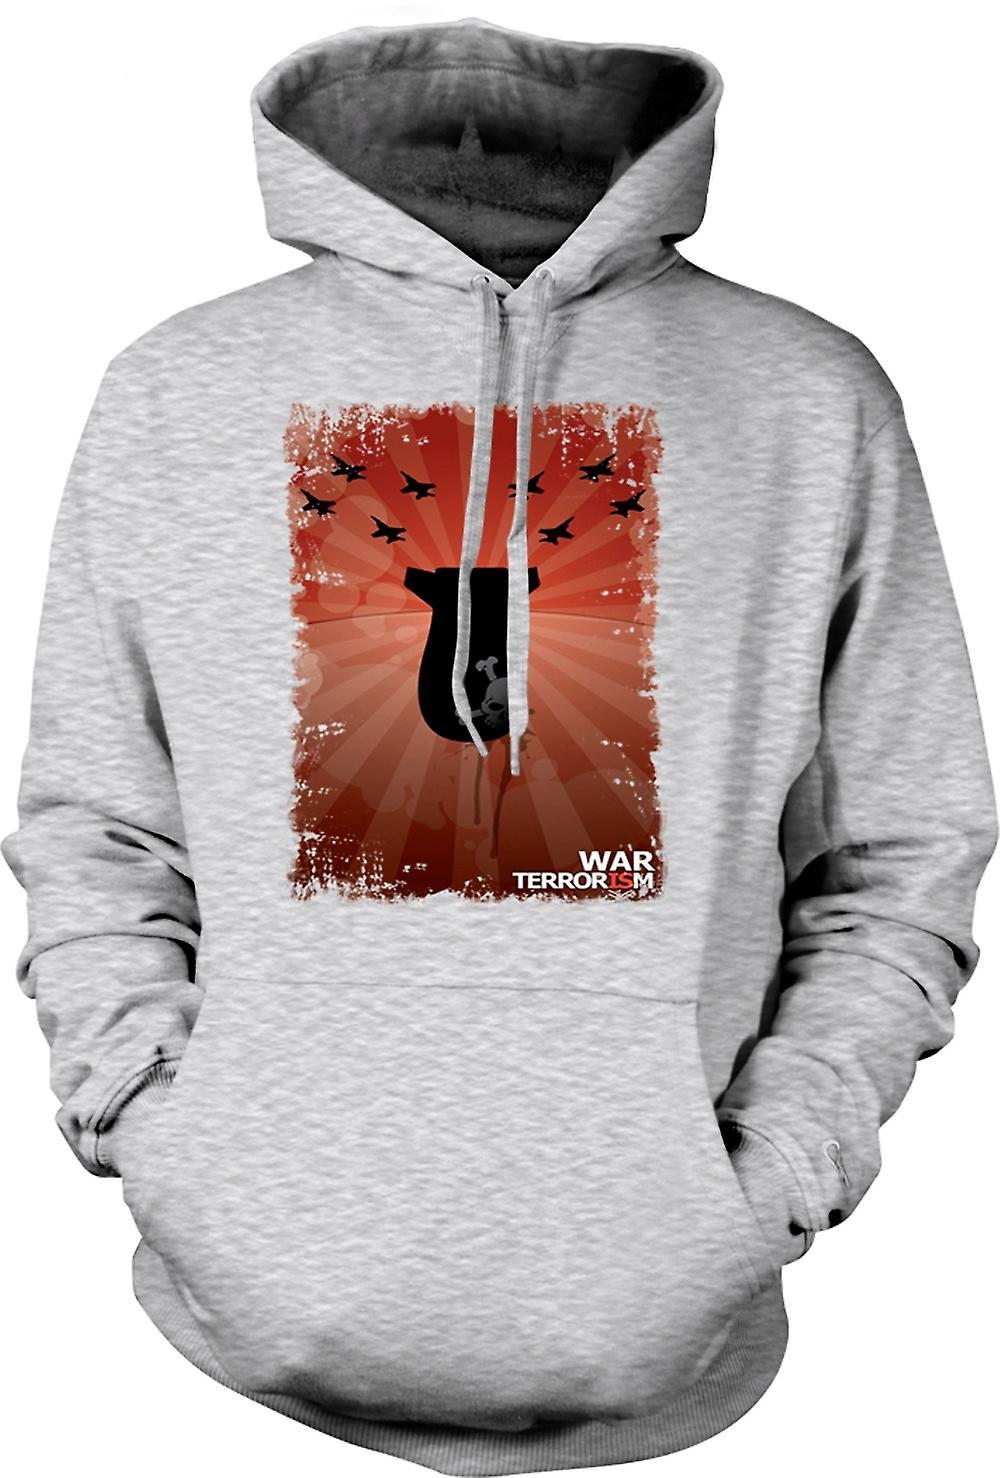 Mens Hoodie - War Is Terrorism - Anti War - Poster